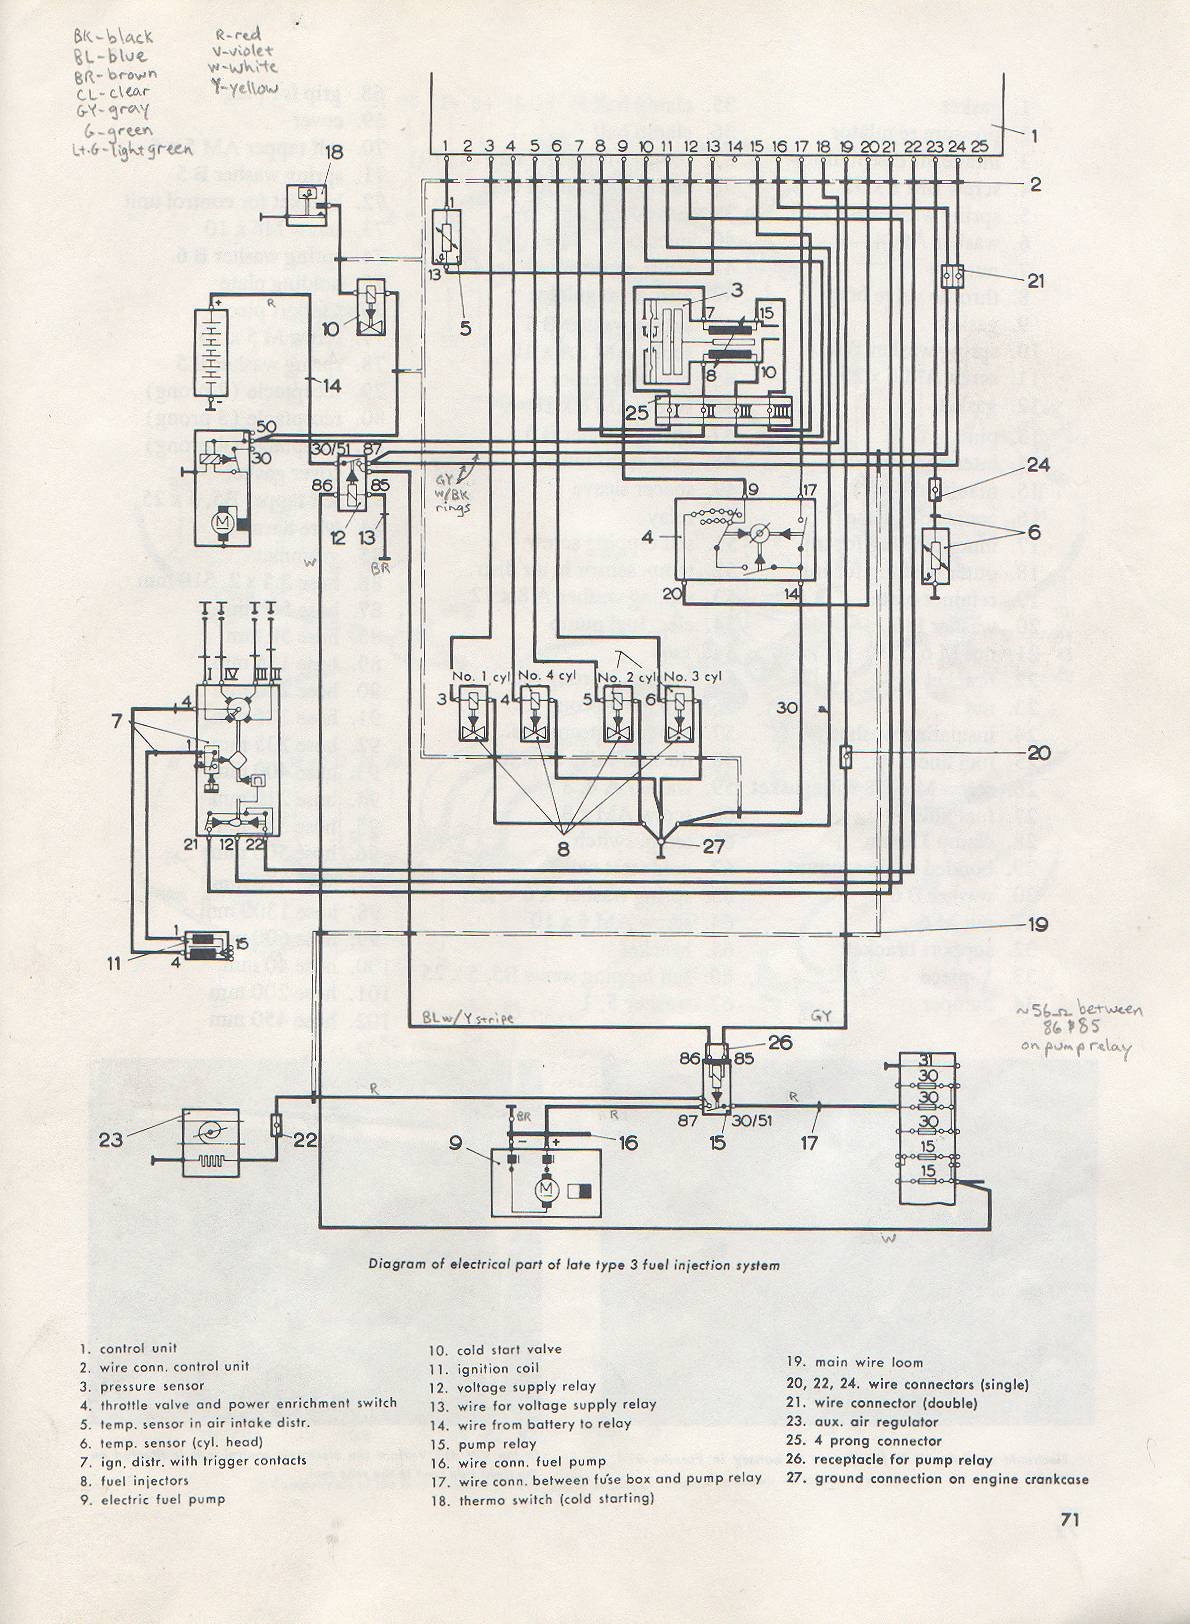 vw type 3 fuel injection wiring diagram   39 wiring